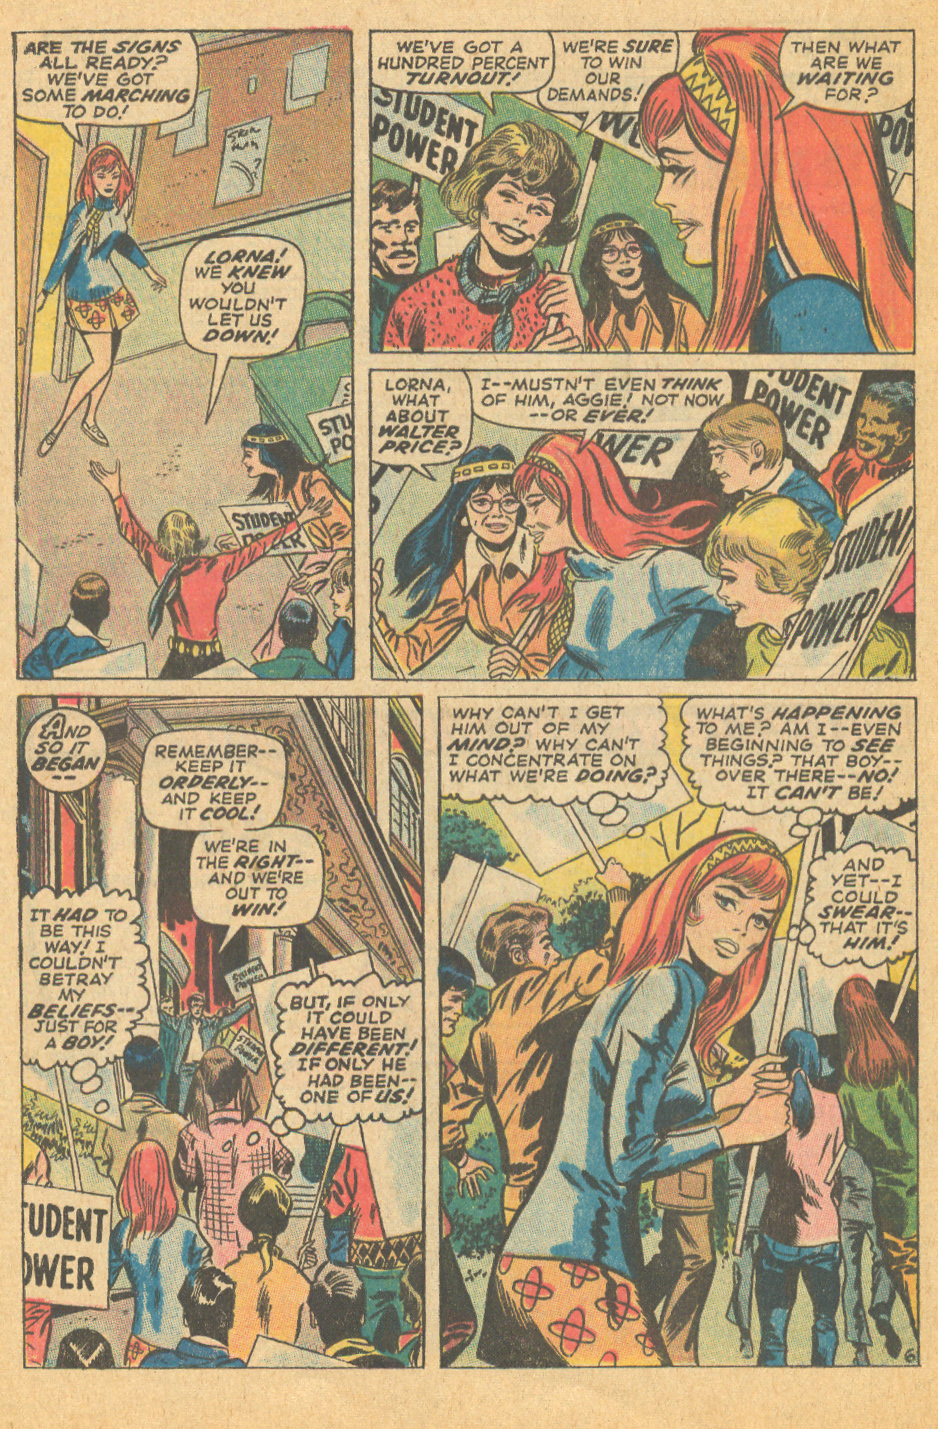 Don Heck romance comic book from Marvel